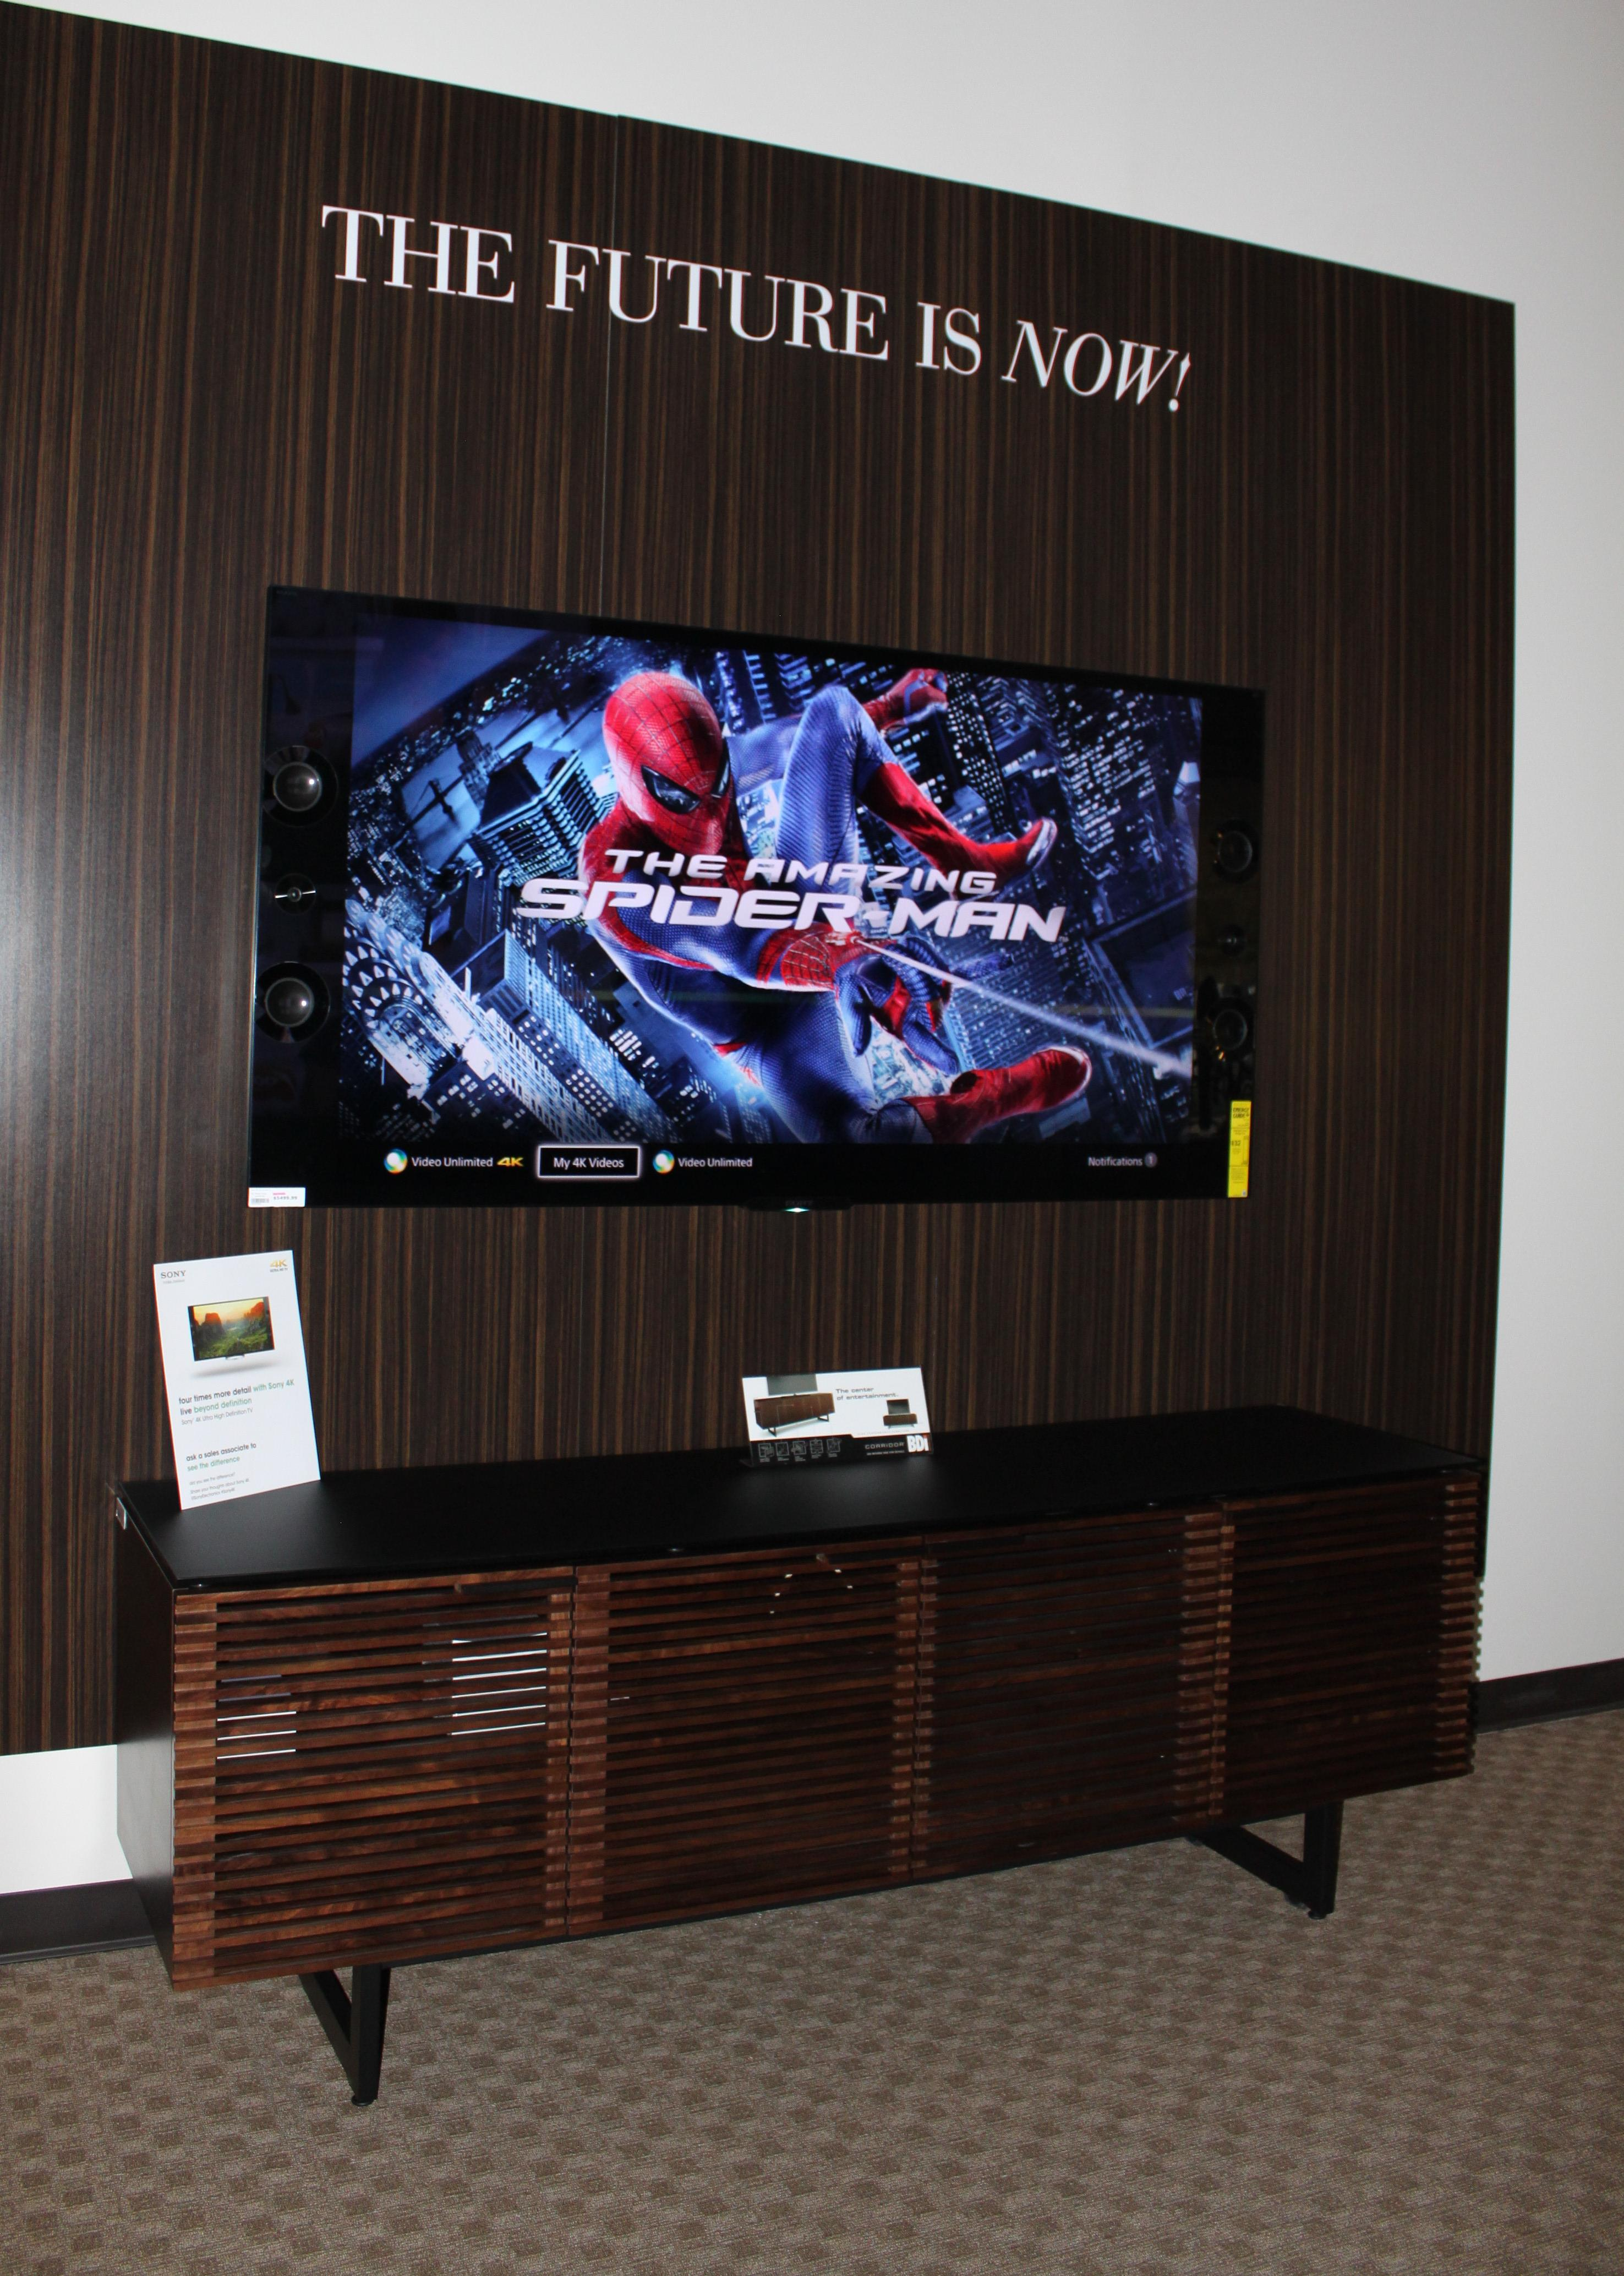 Tv Showcase In Wall Fenrez Com Sammlung Von Design Zeichnungen  # Tv Showcase In Wall